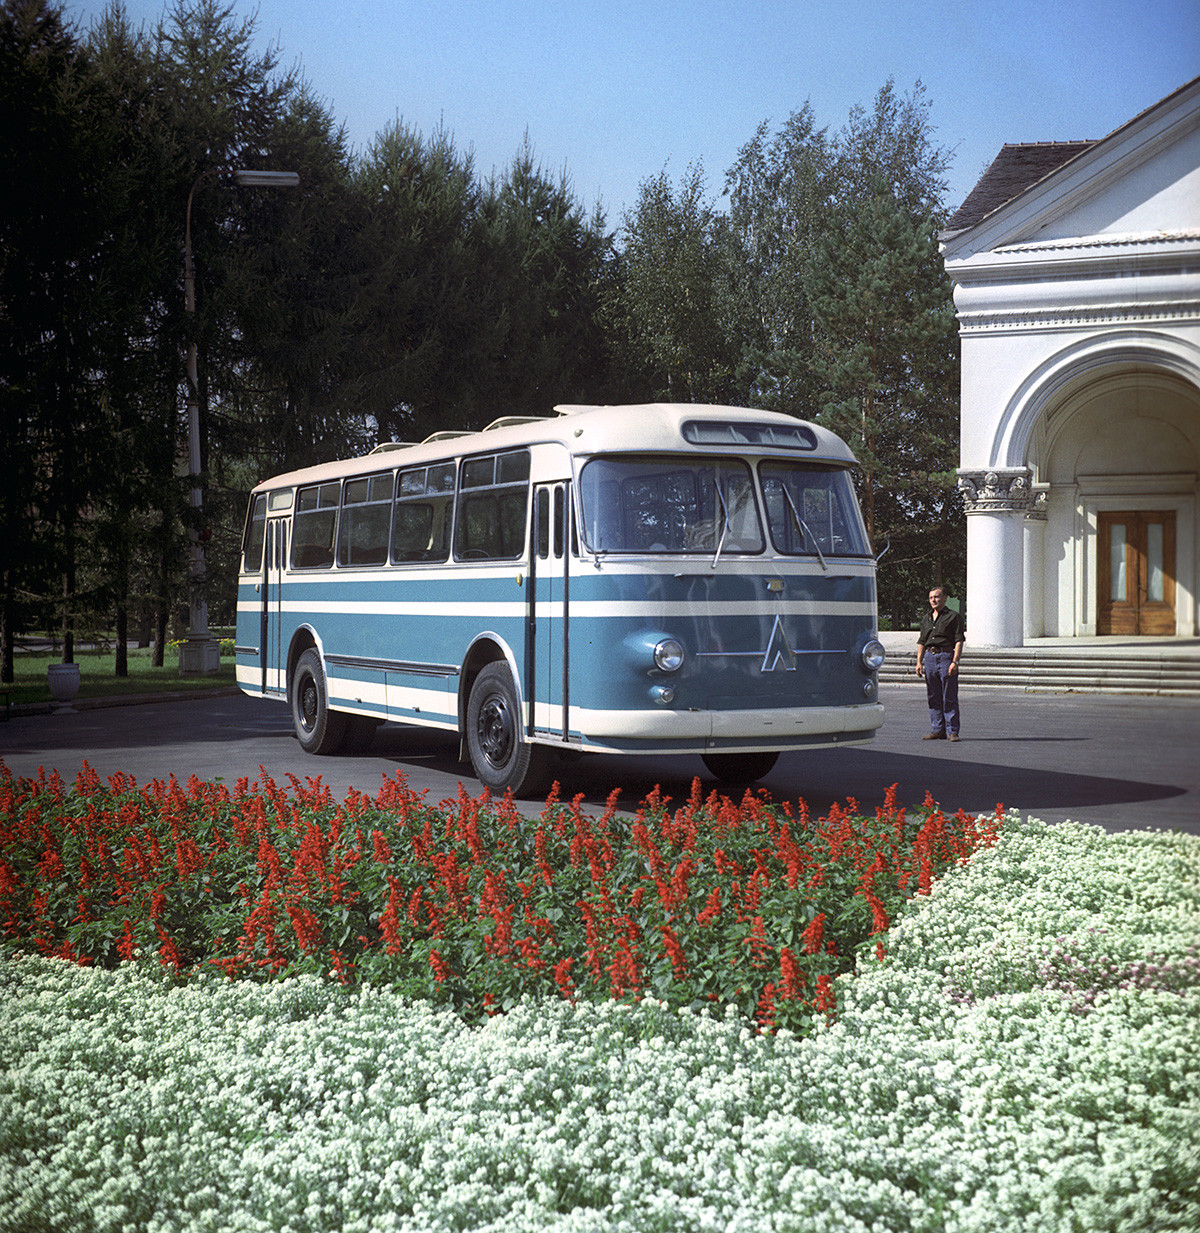 Soviet LAZ-697 bus, manufactured by the Lvov Bus Factory, 1970